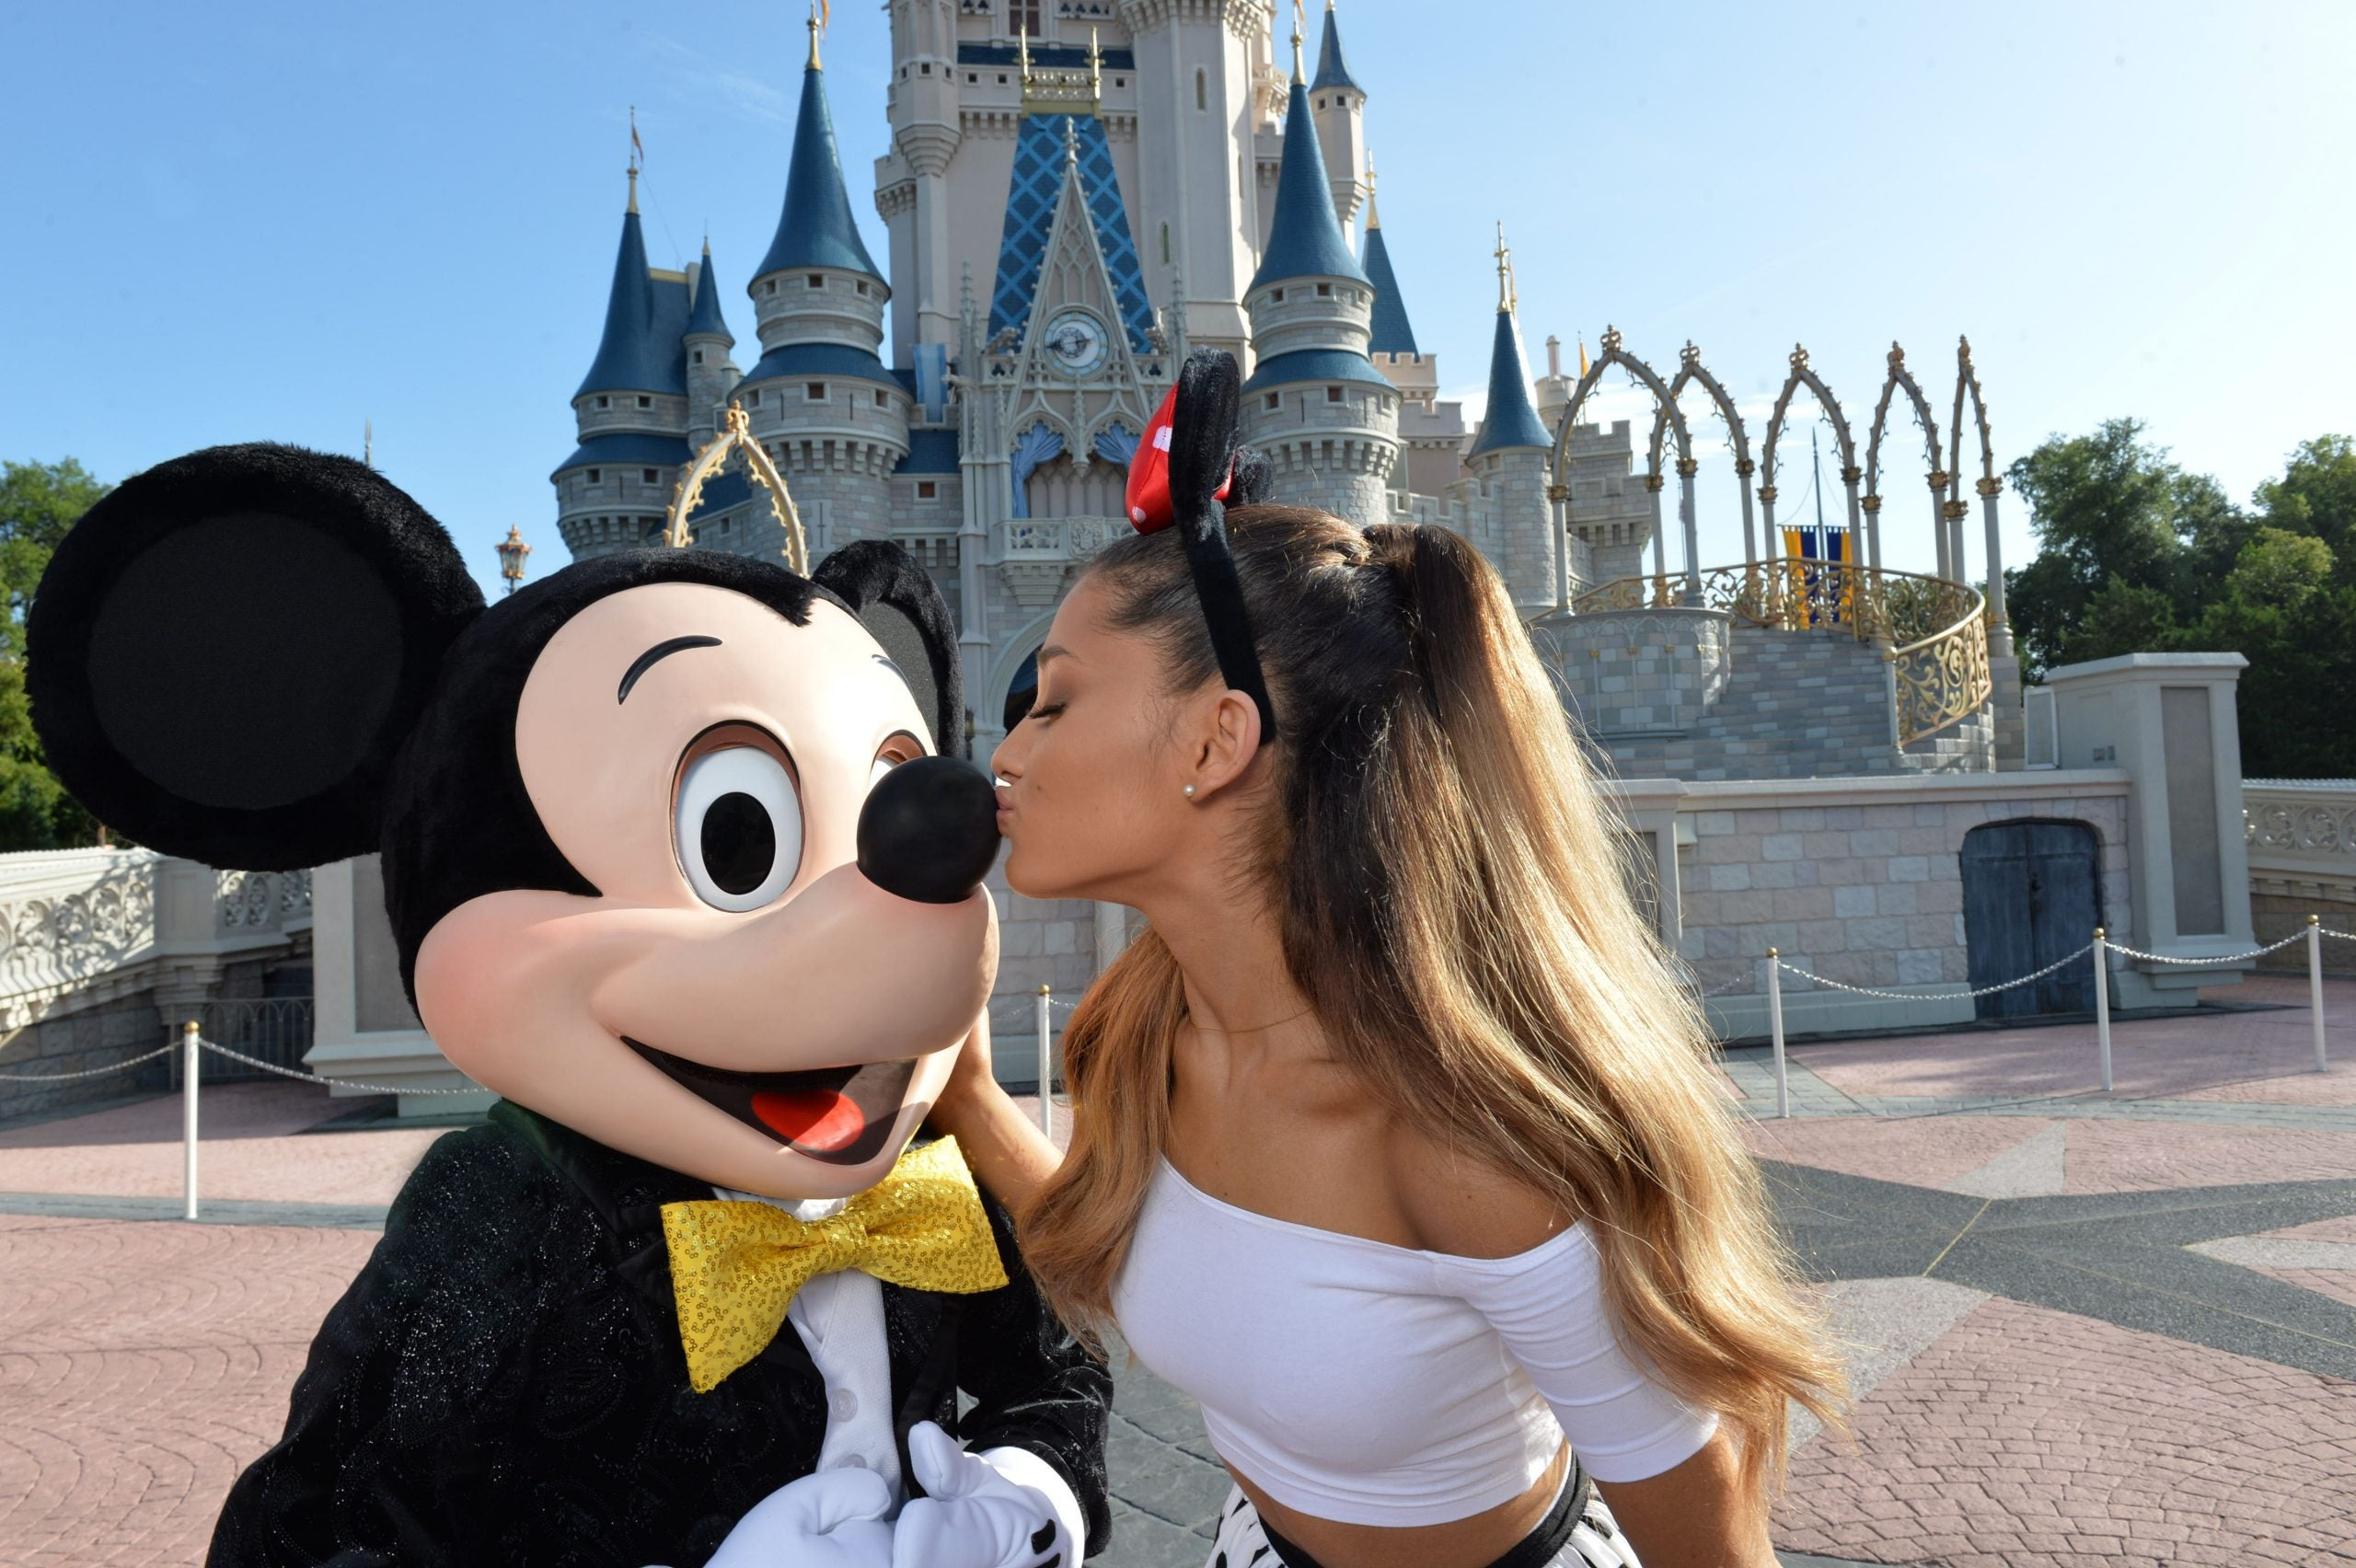 From influencers to couples, childless millennials are obsessed with going to Disneyland